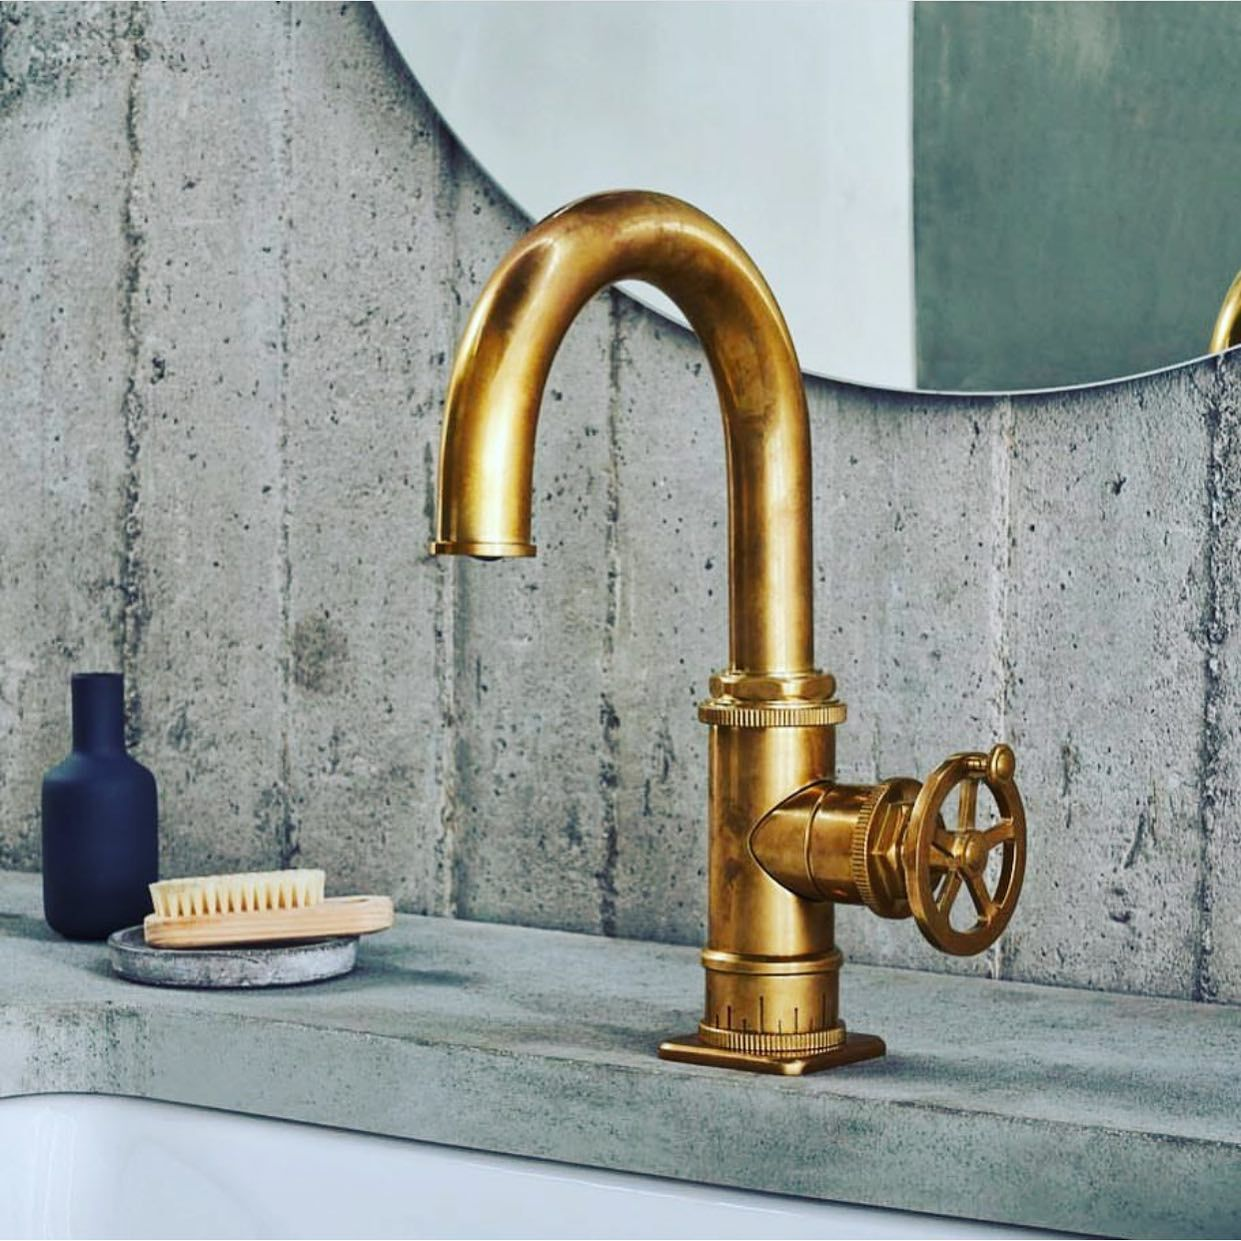 Steampunk Bay Single Hole Faucet In Burnished Brass Faucet Lavatory Faucet Industrial Style Bathroom [ 1241 x 1241 Pixel ]